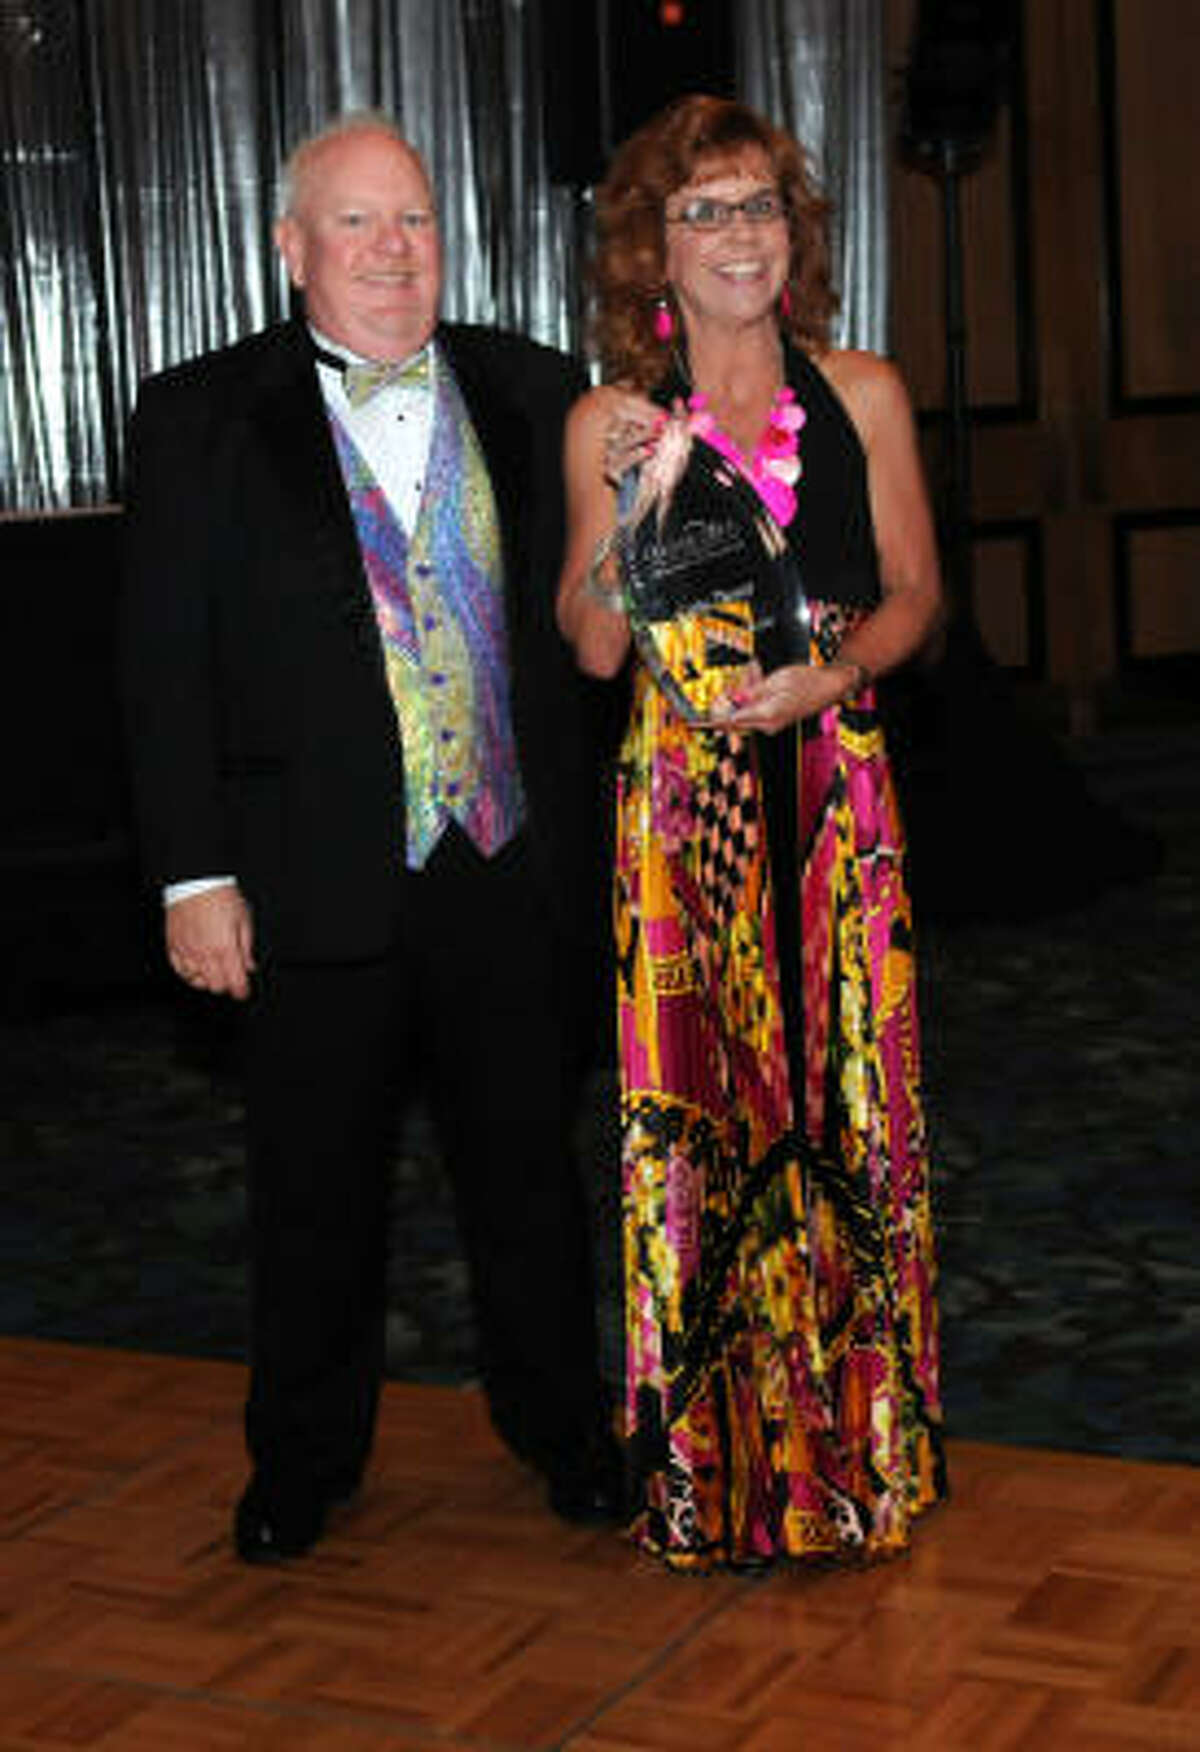 Clear Lake Area Chamber outgoing chairman Cathy Turner was given an award from new chairman Michael Divine.